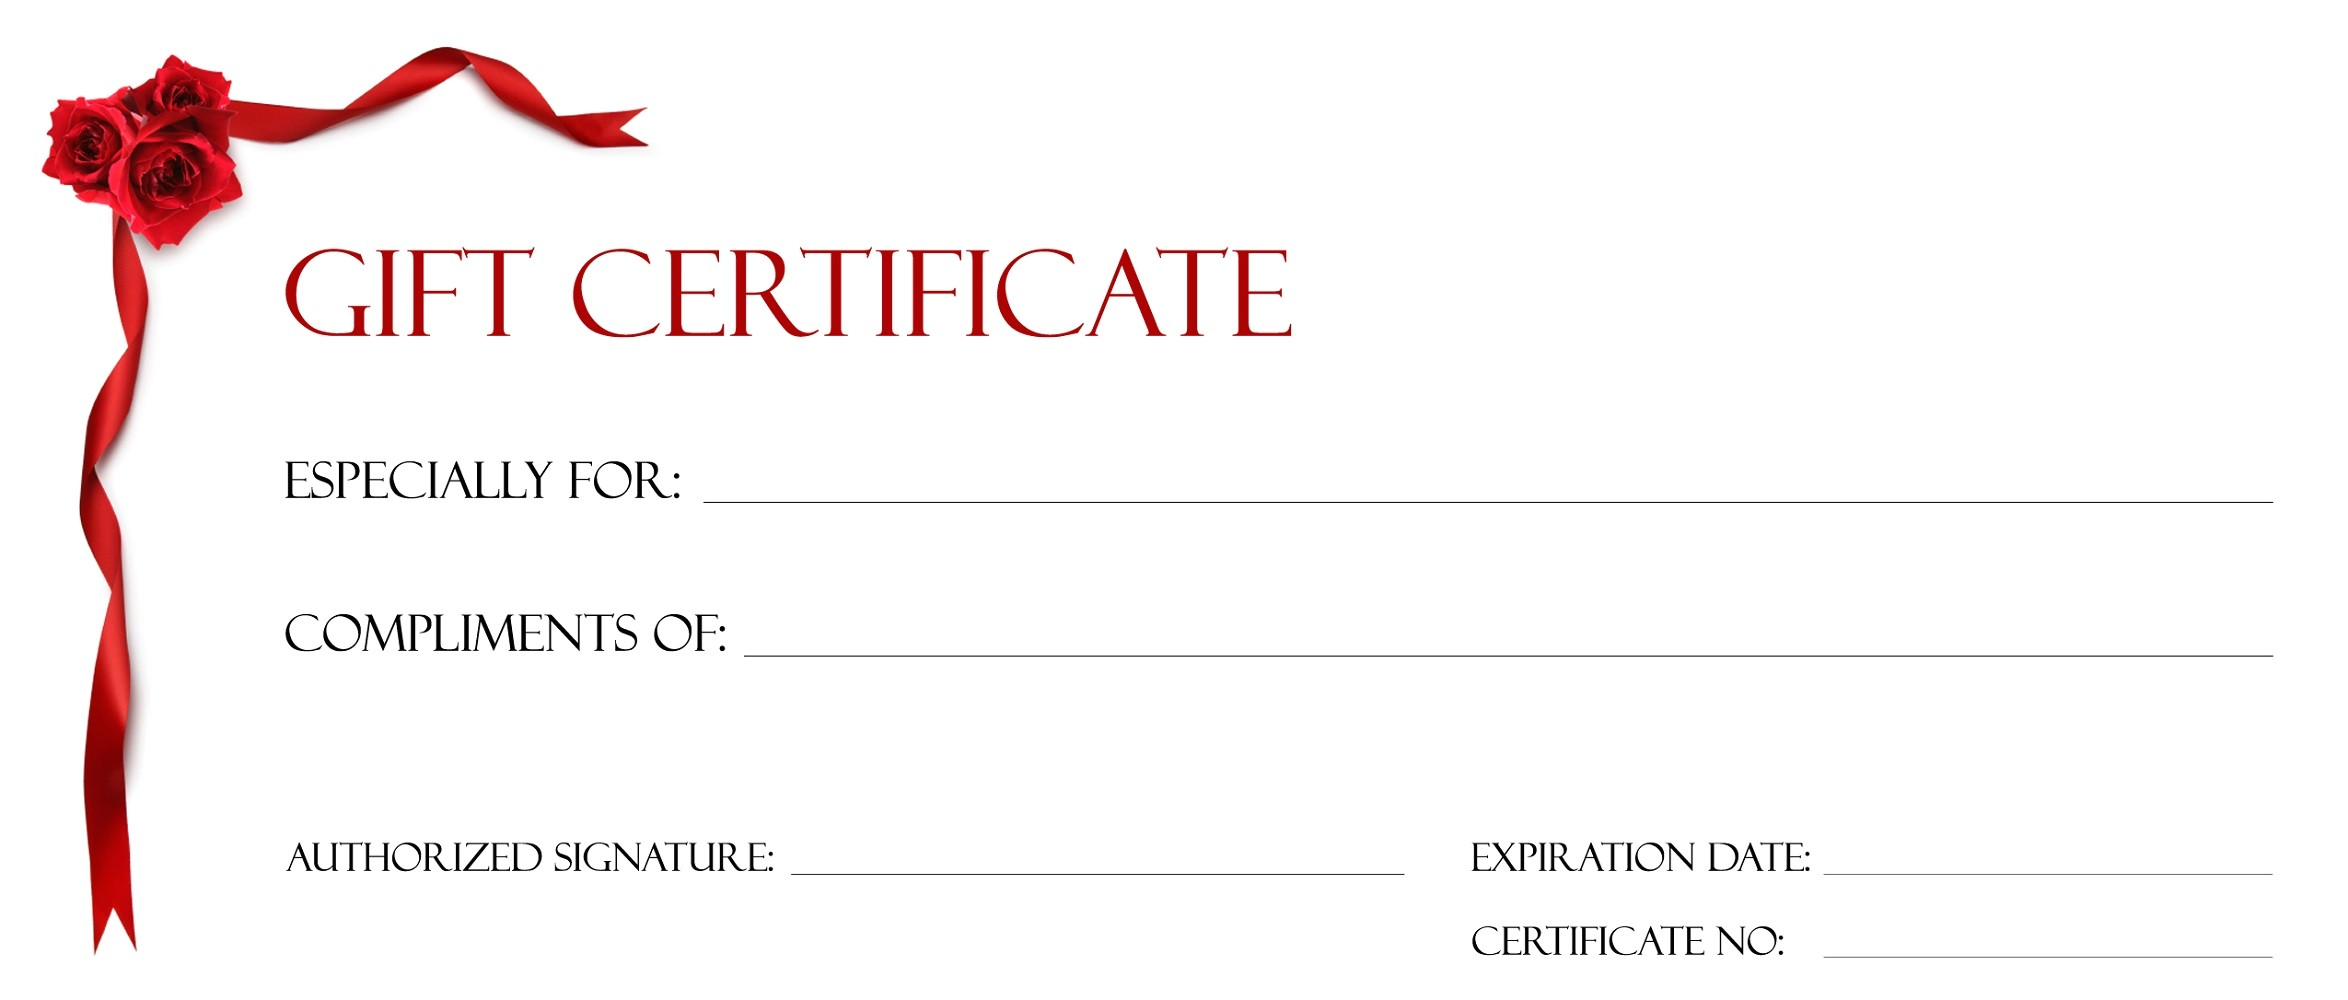 Design A Gift Certificate Template Free Gift Certificate Templates to Print Activity Shelter